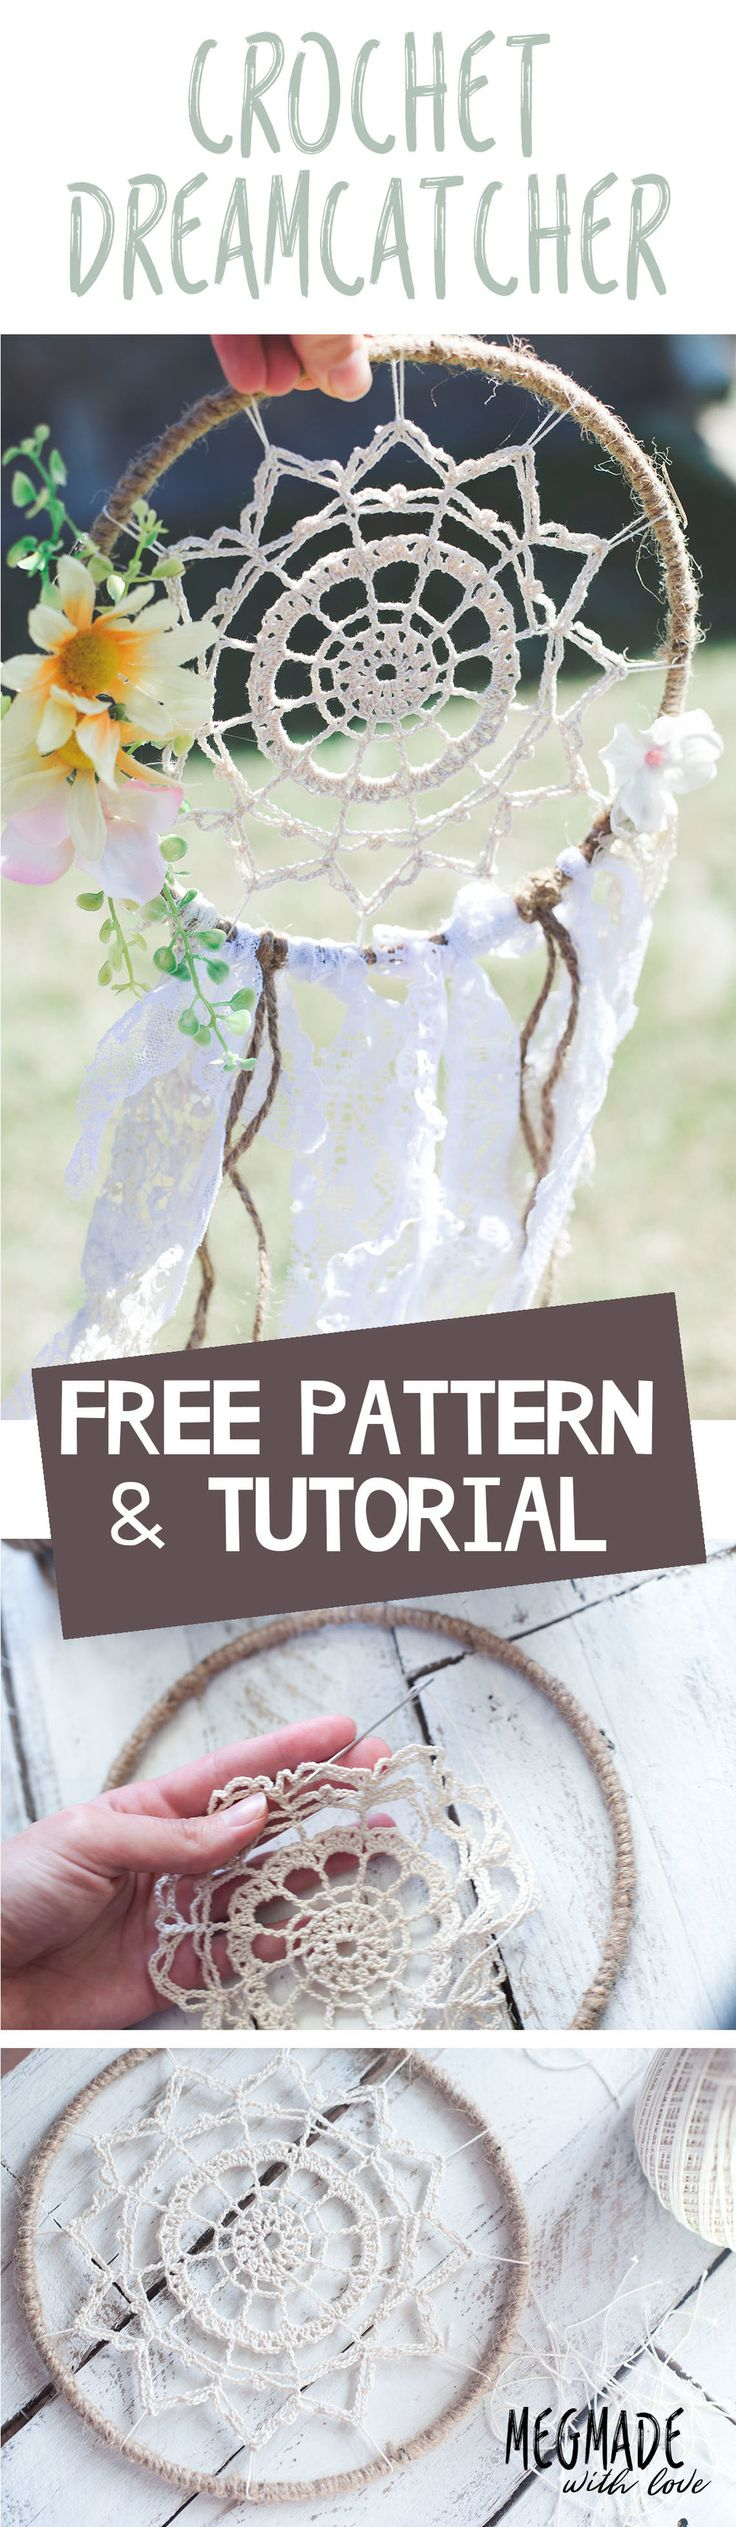 Crochet Dreamy Dreamcatcher Pattern — Megmade with Love